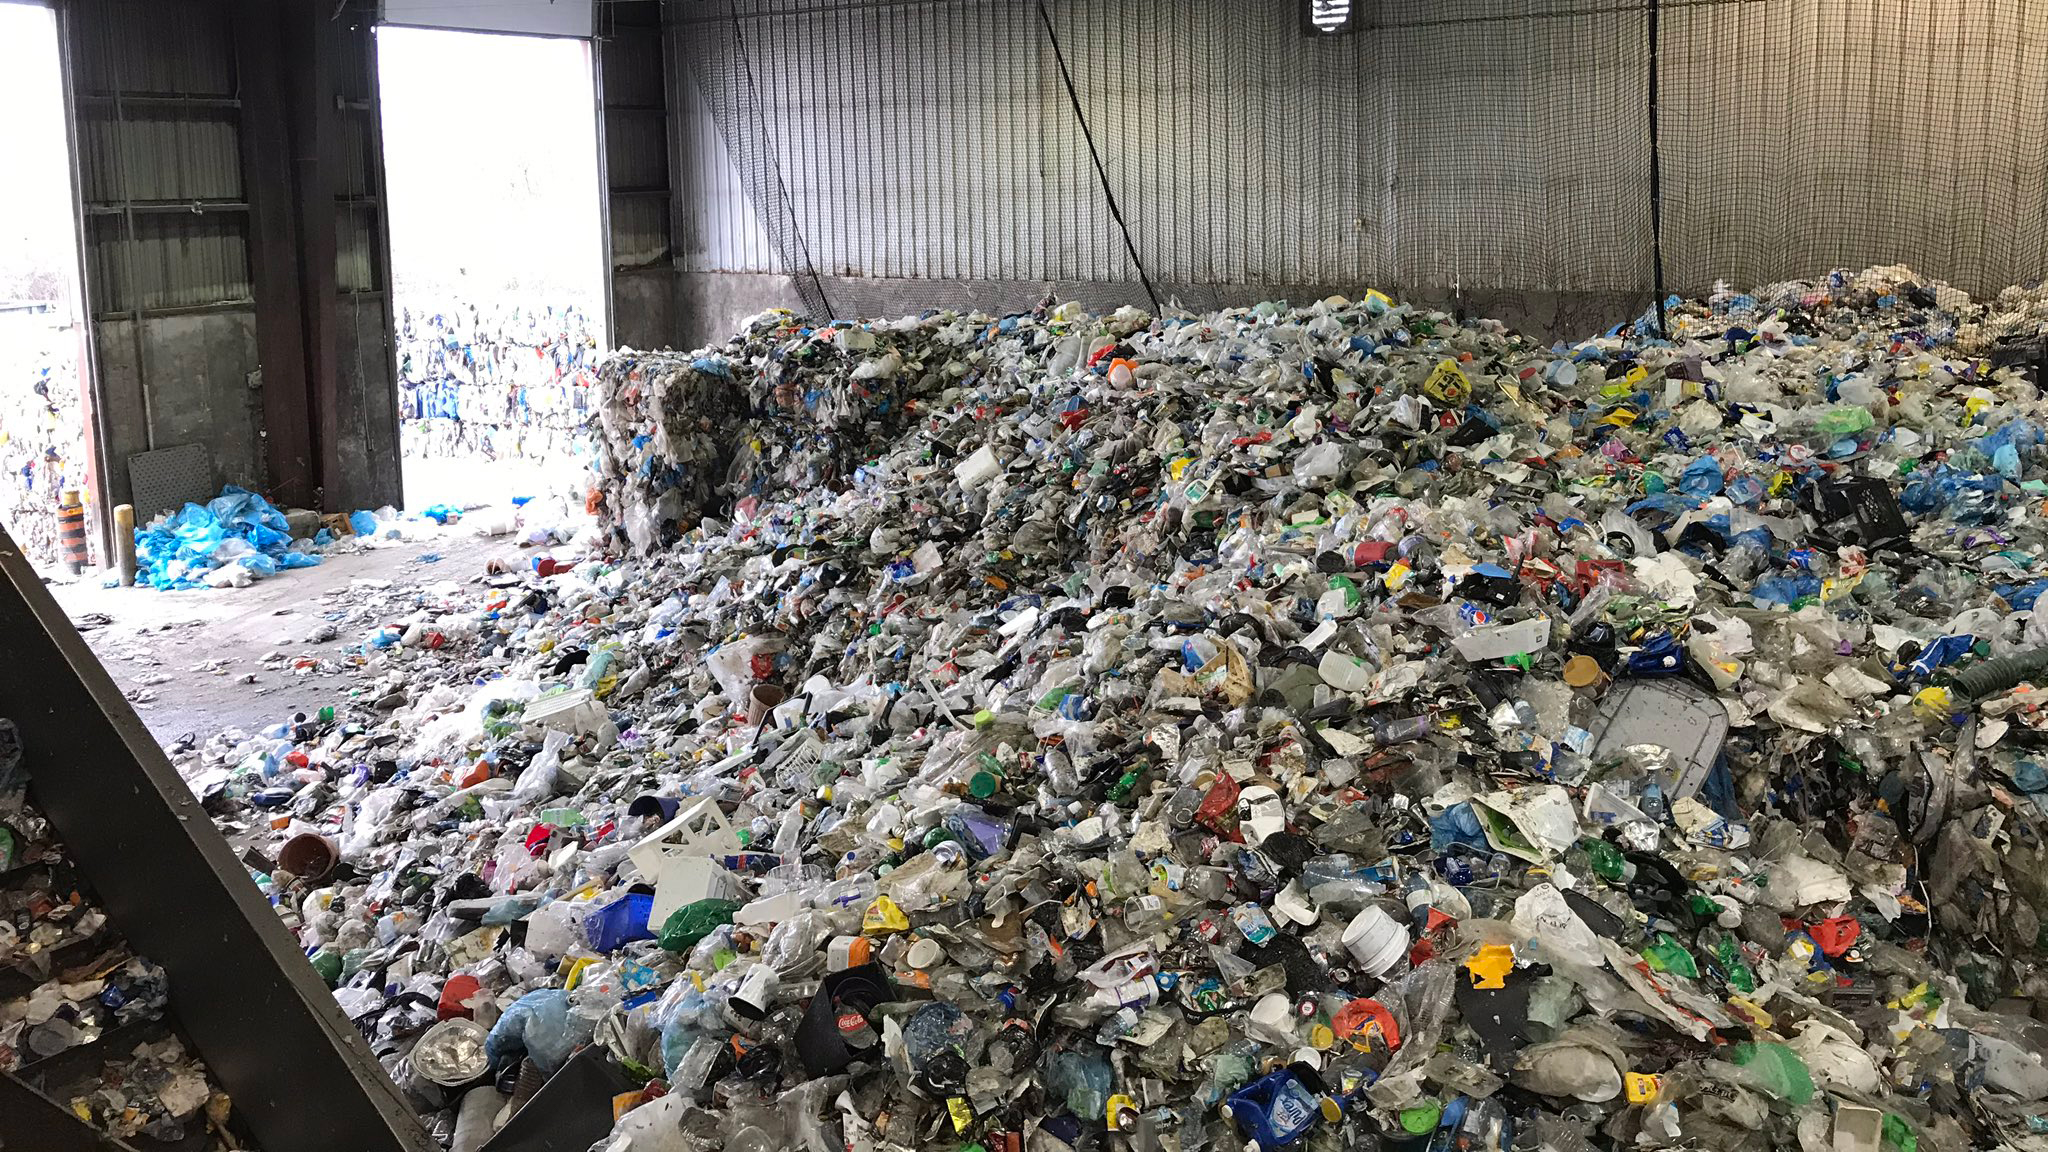 A pile of recycling at Cascades Recycling Facility here in Ottawa.